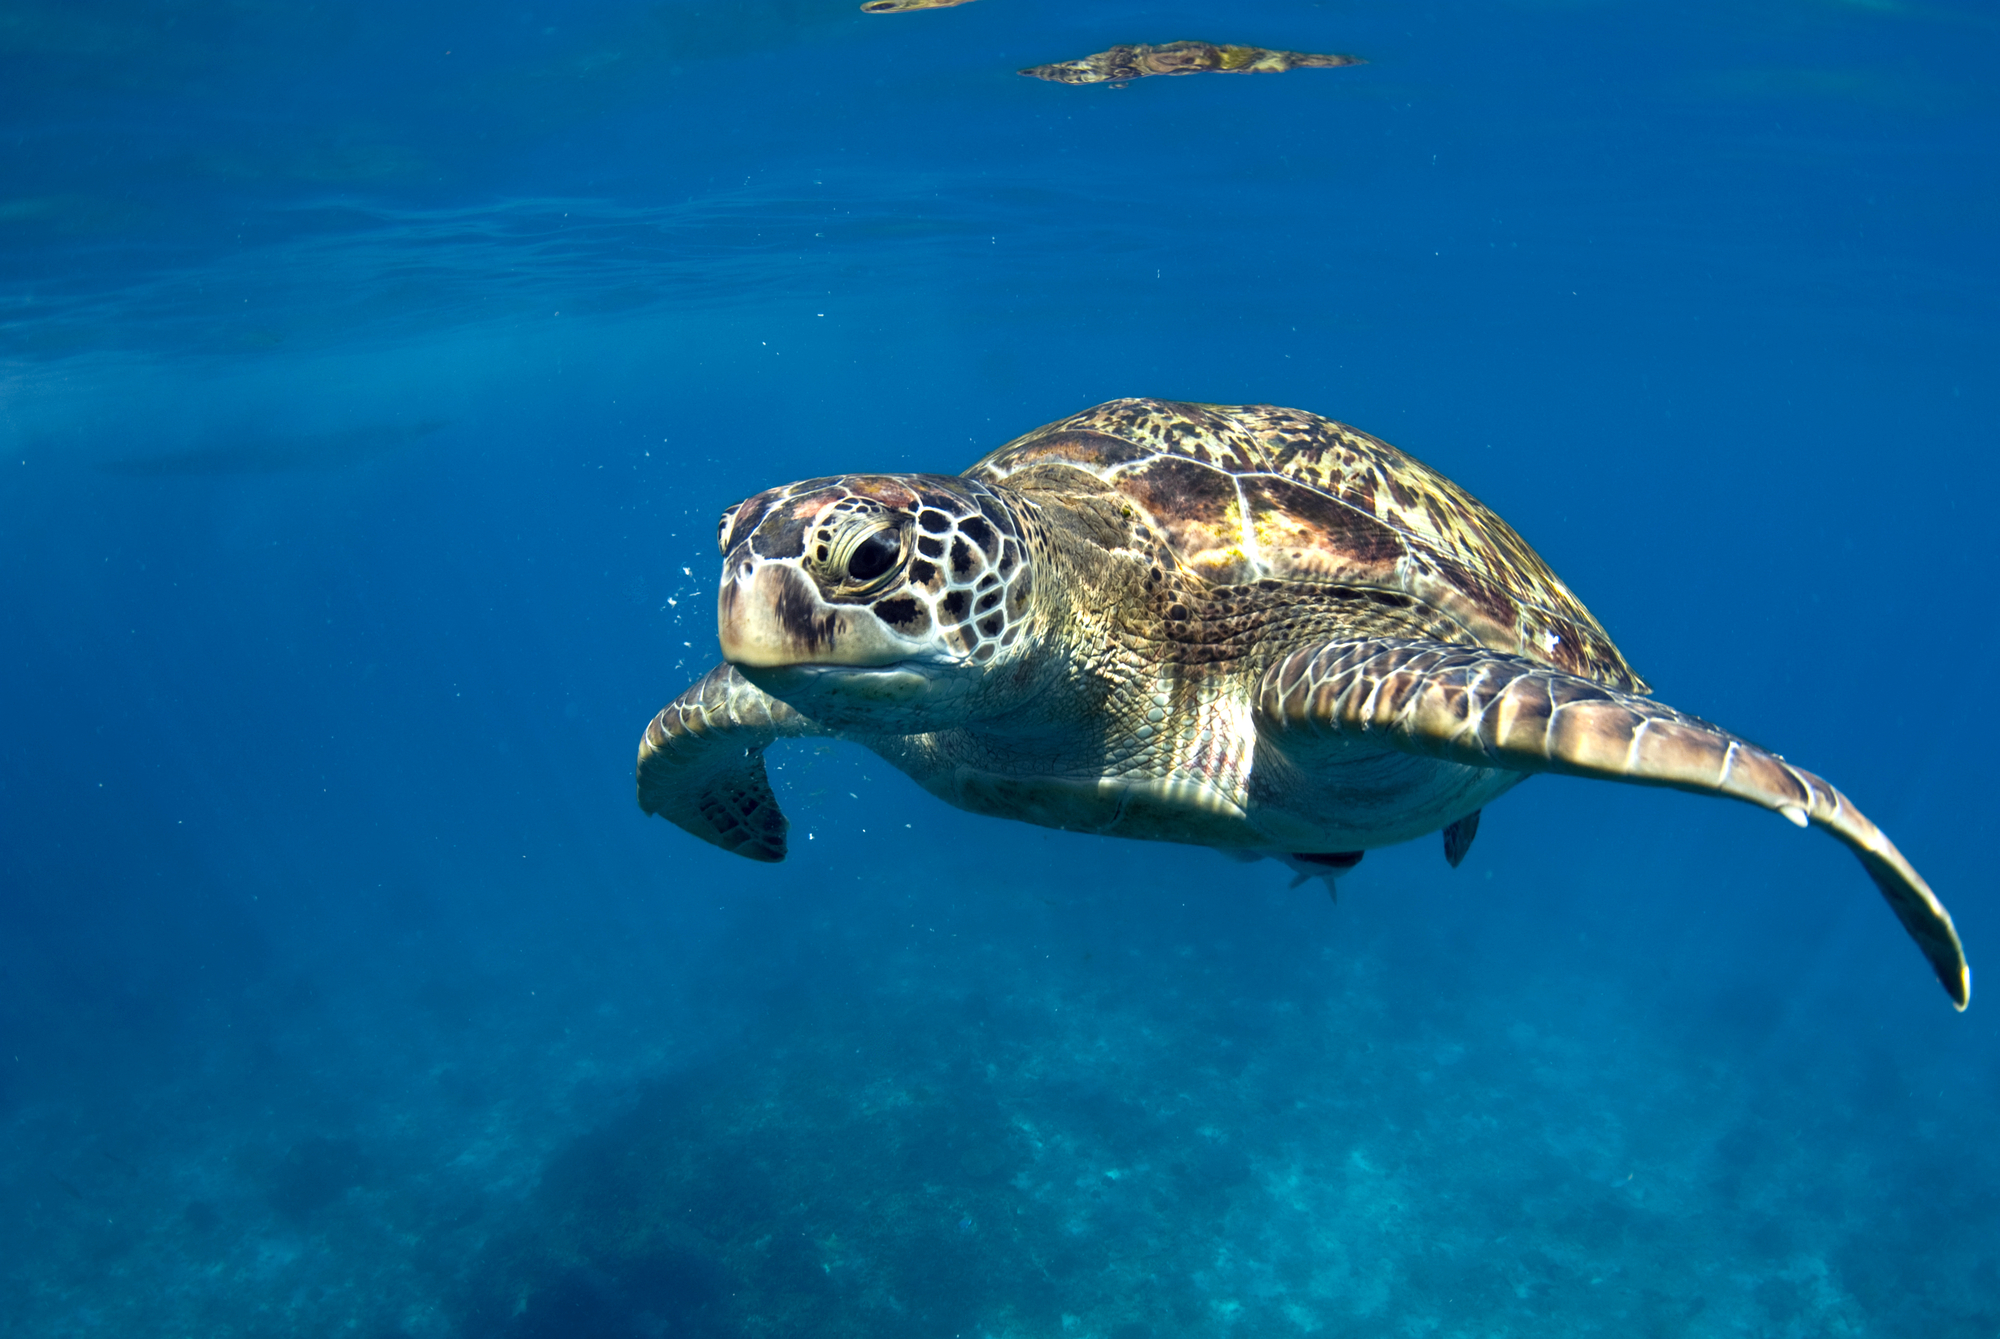 Putting lights on gillnets cuts bycatch of sea turtles and dolphins